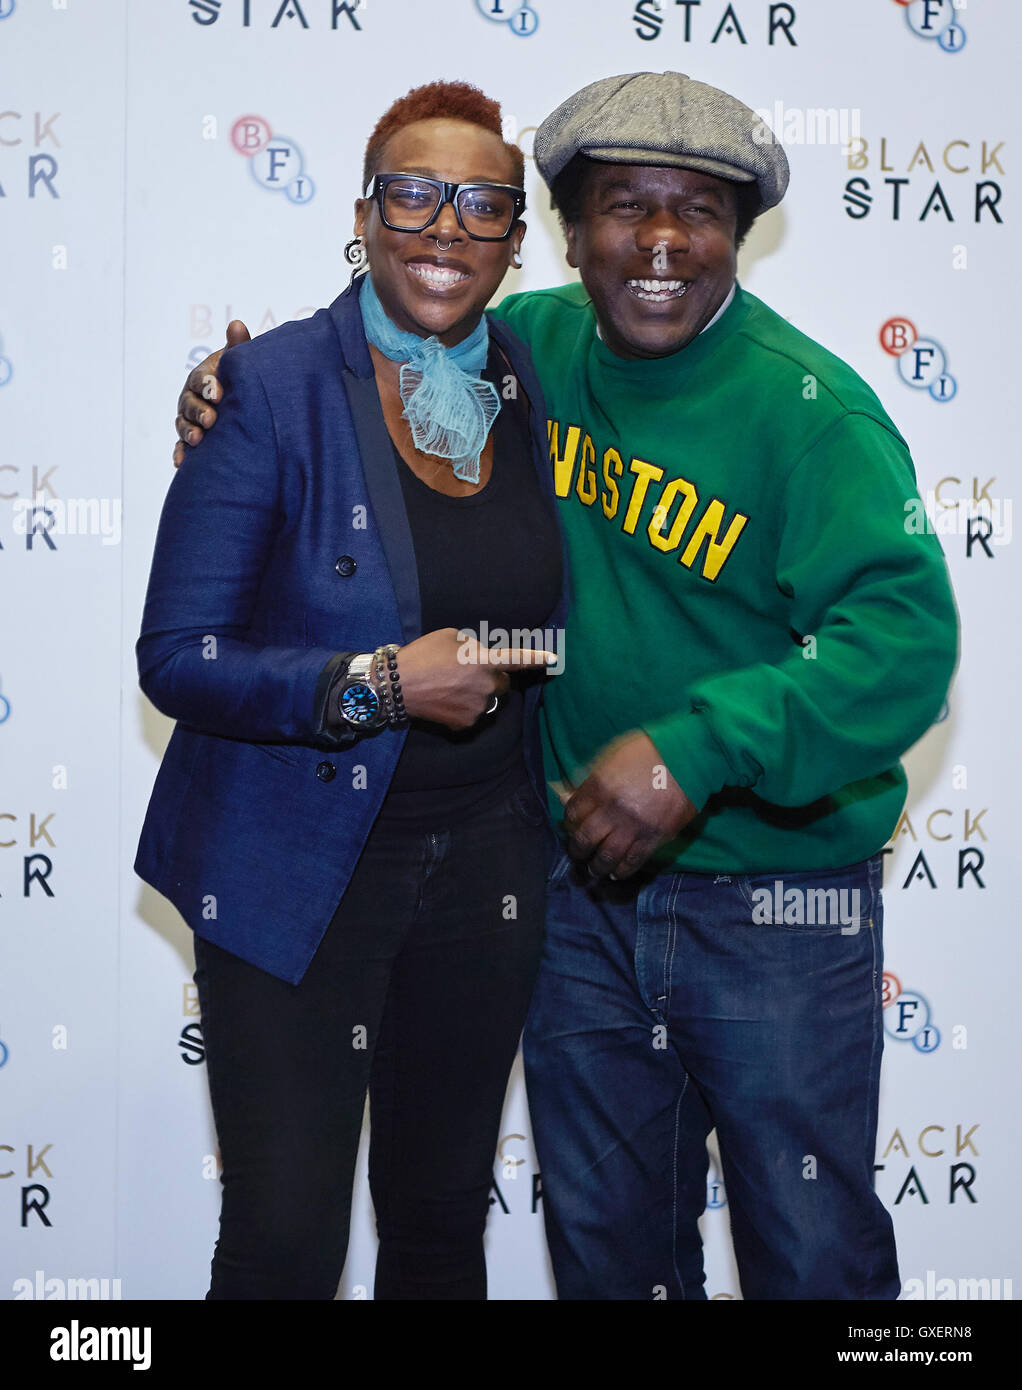 Black Star Press Launch At Bfi Southbank Featuring Gina Yashere Dj Norman Jay Mbe Where London United Kingdom When